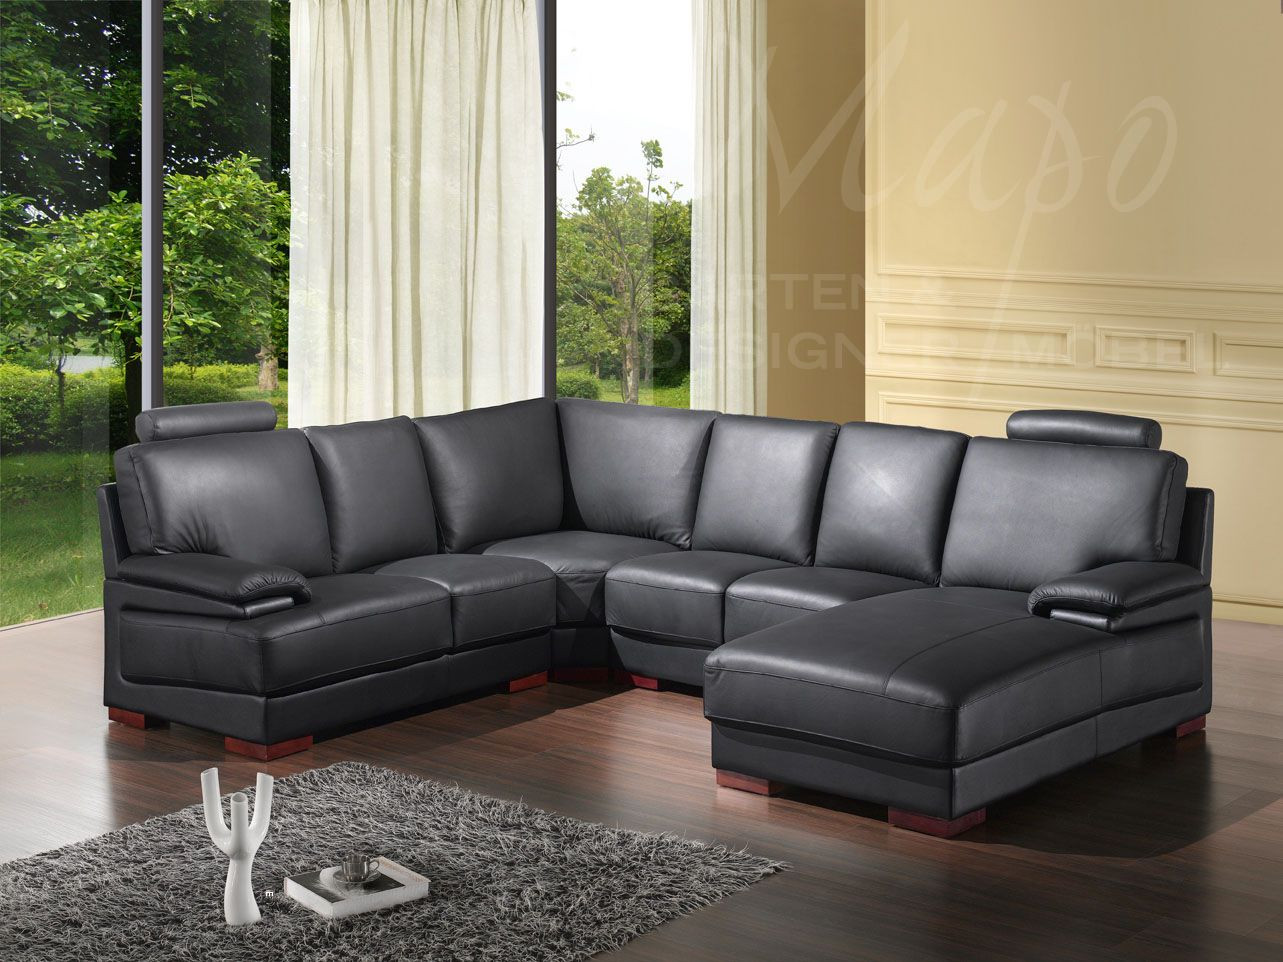 ecksofas schwarz mit federkern 5137 rs mapo m bel. Black Bedroom Furniture Sets. Home Design Ideas